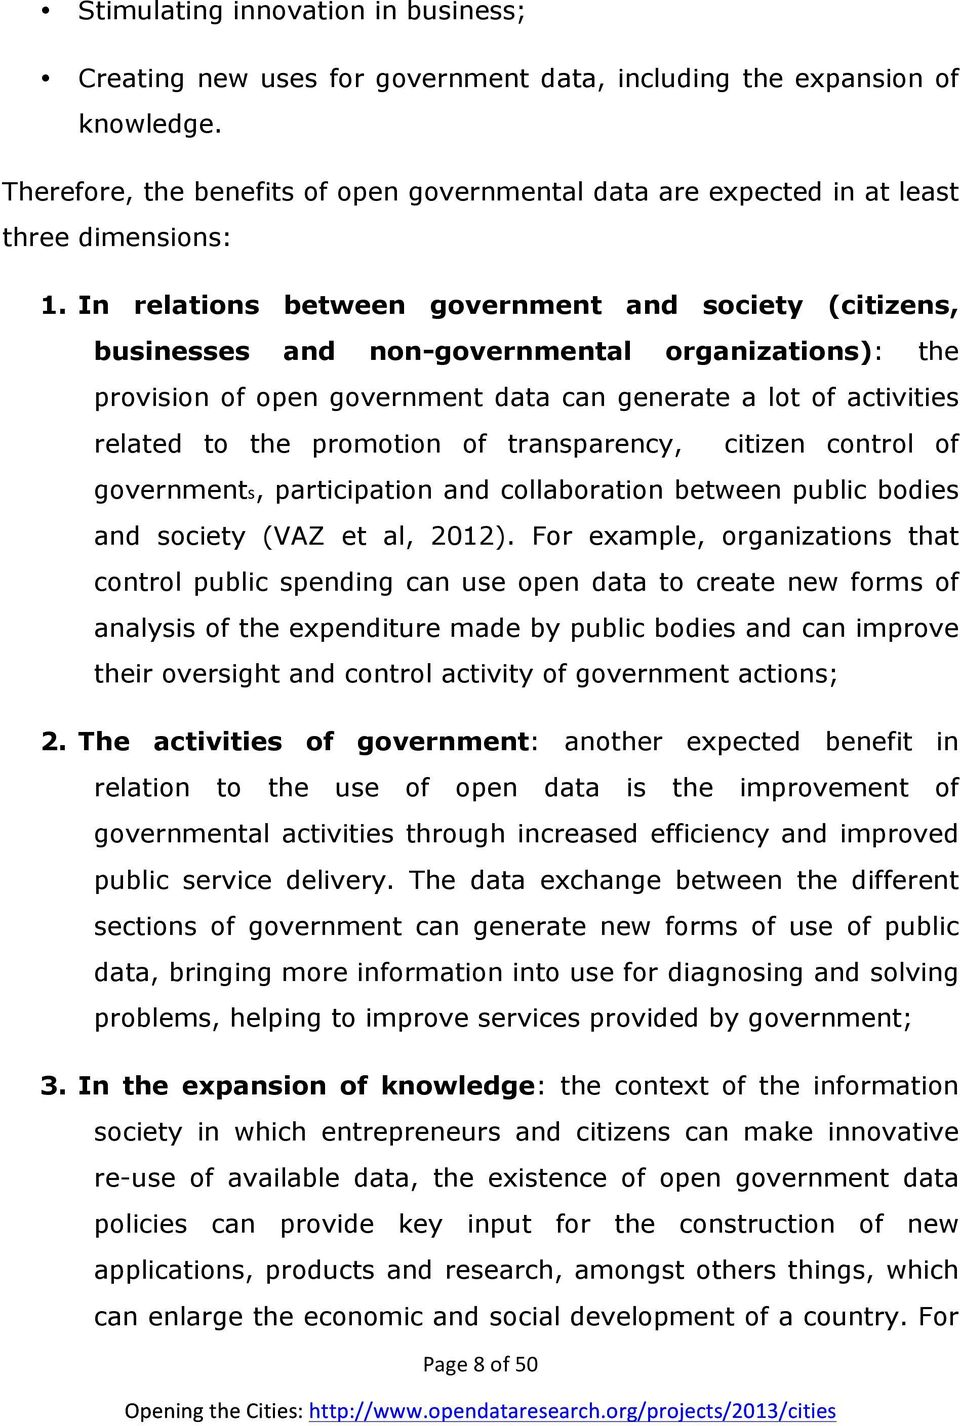 In relations between government and society (citizens, businesses and non-governmental organizations): the provision of open government data can generate a lot of activities related to the promotion